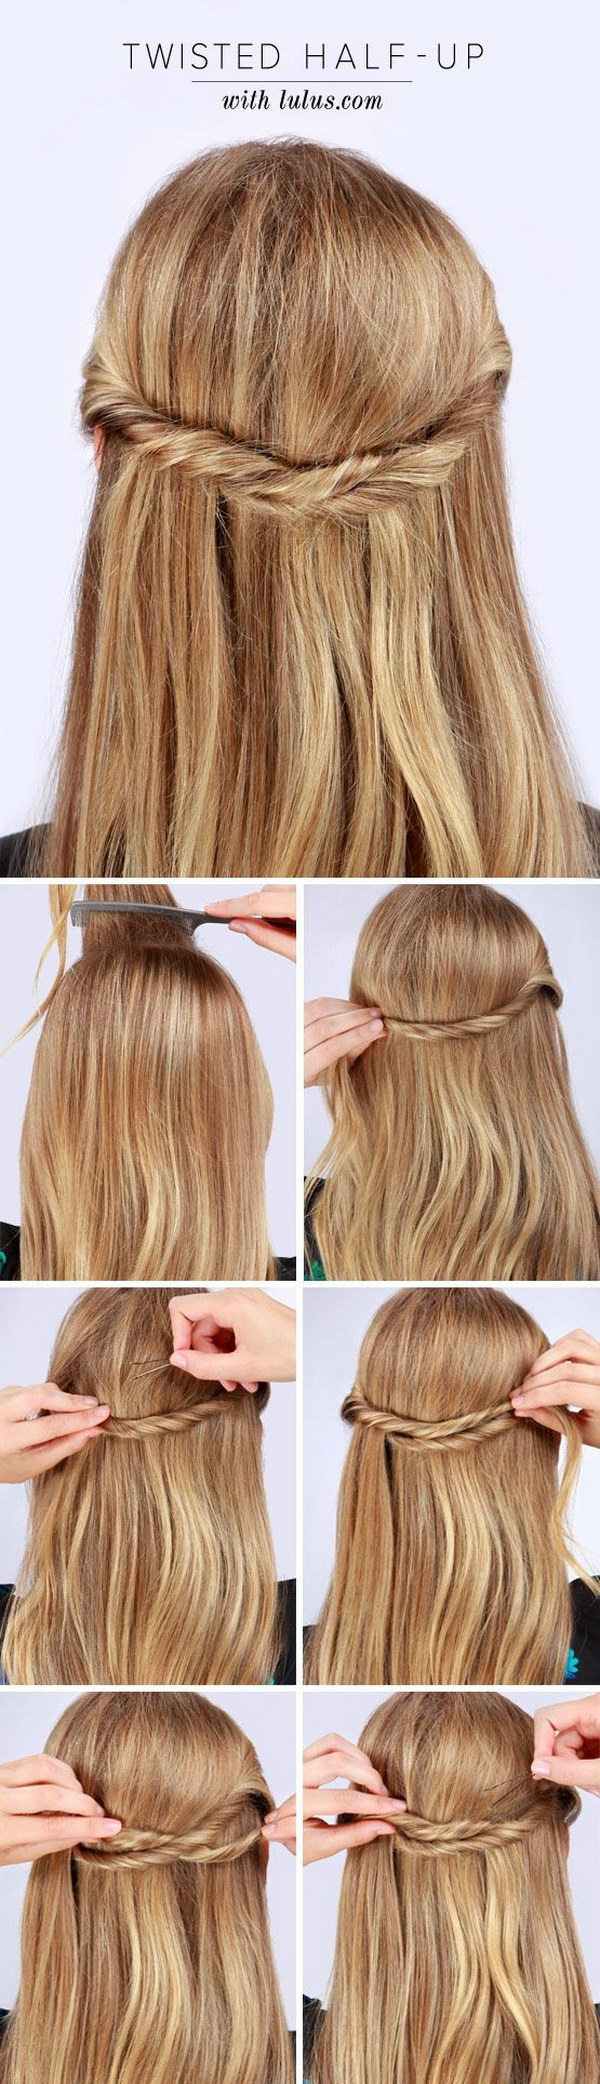 Twisted Half up Hair Tutorial.